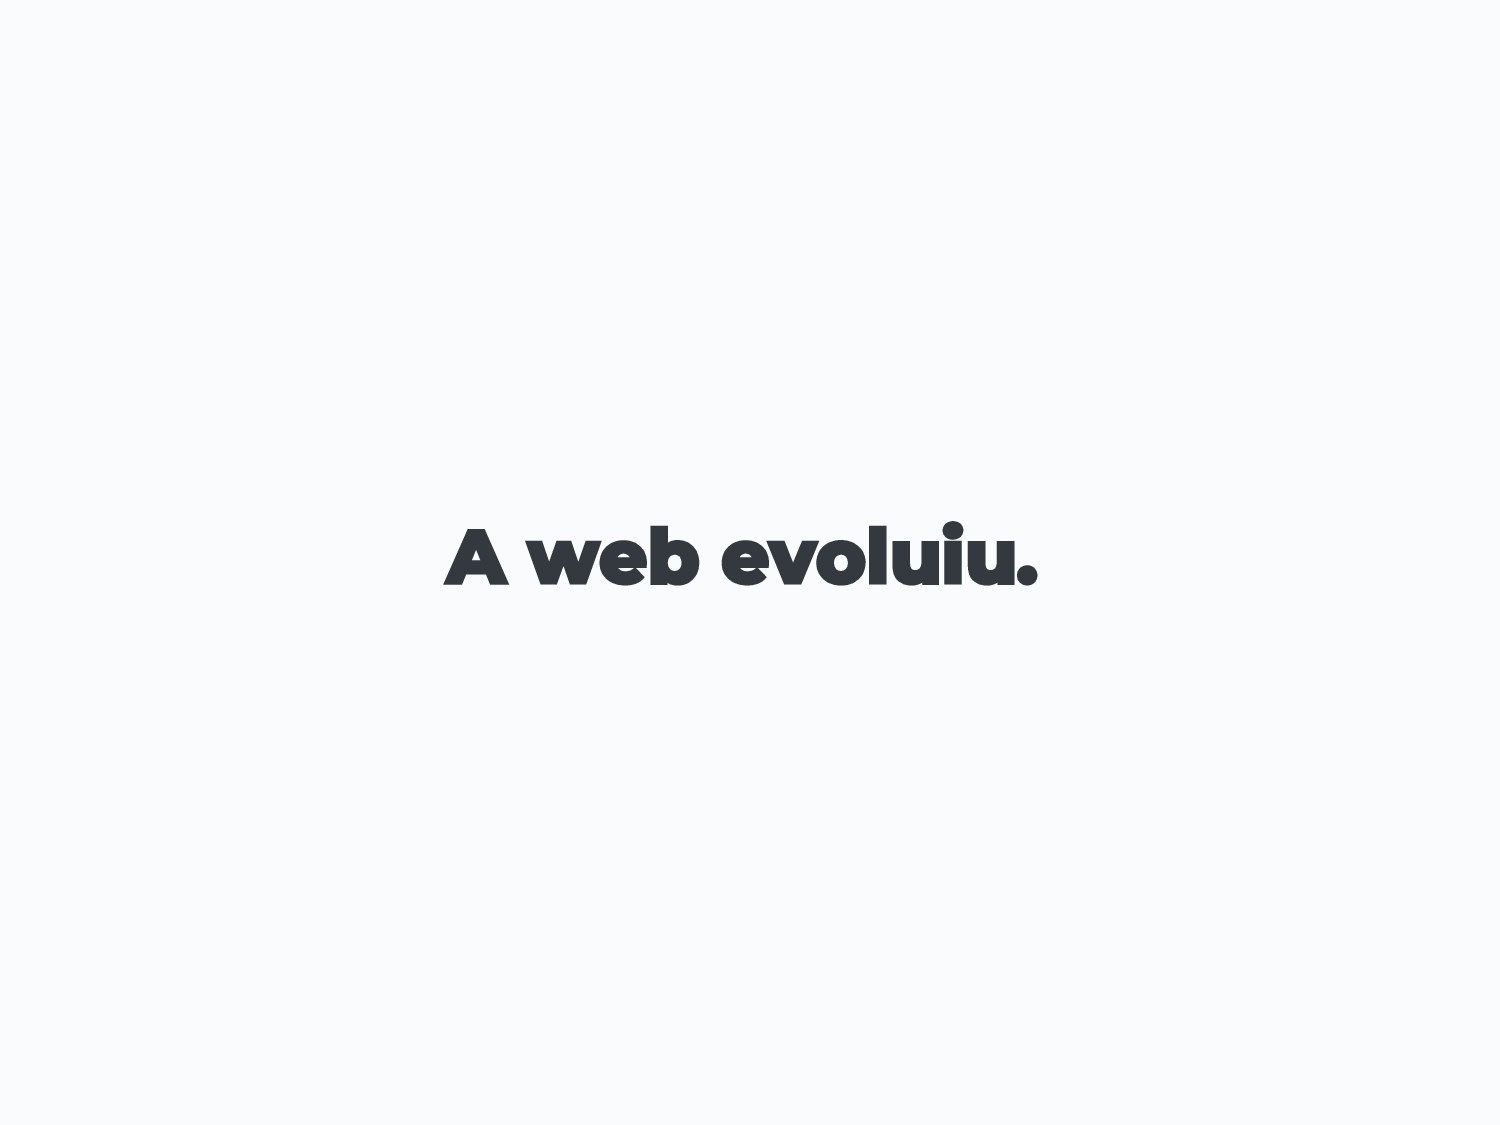 A web evoluiu.